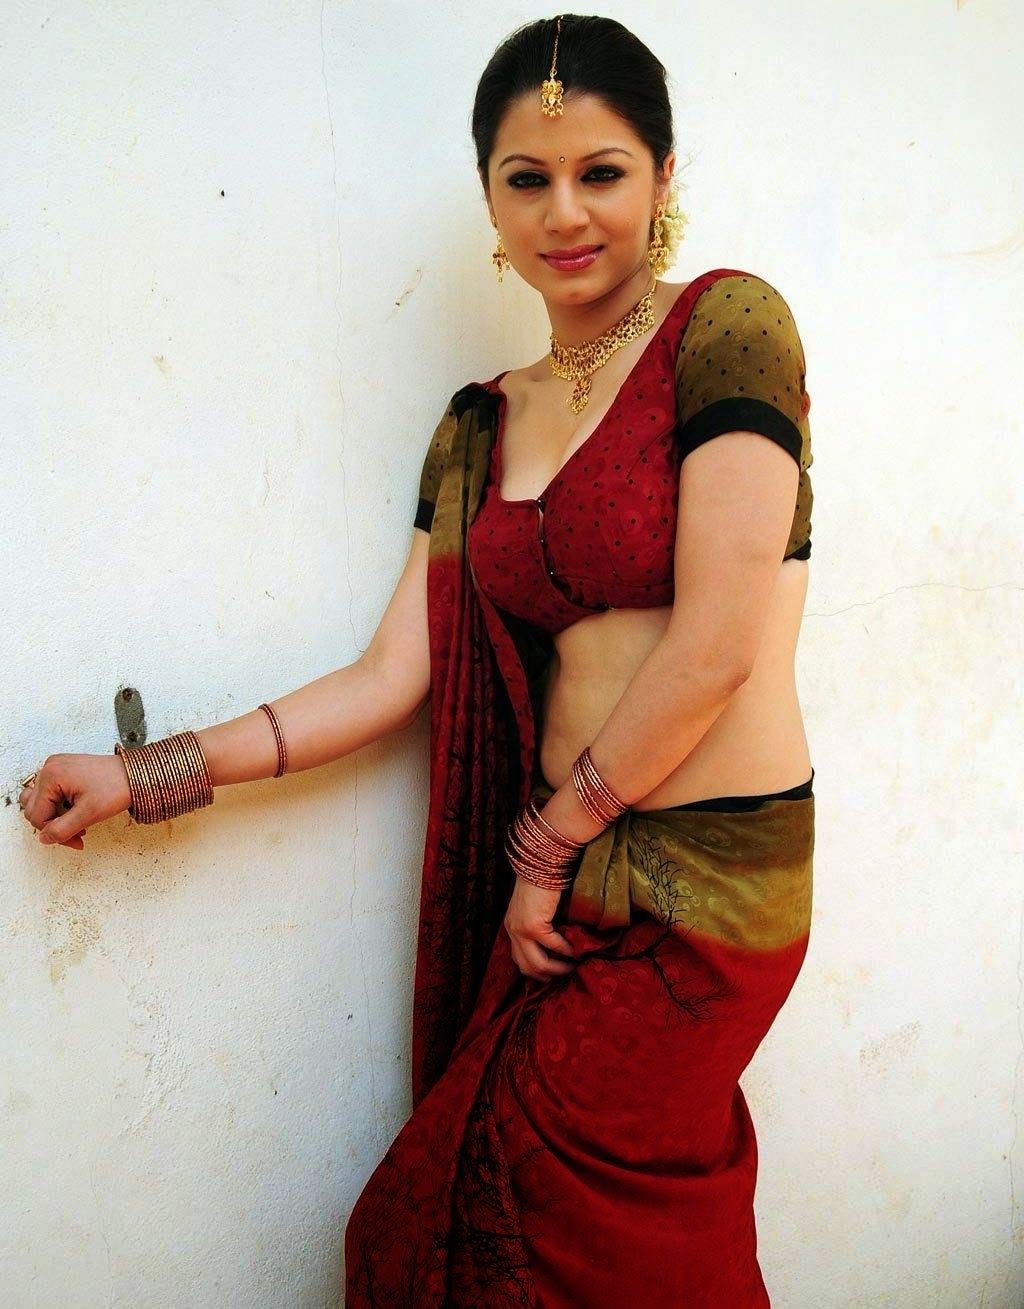 wife saree hips Desi hot sexy